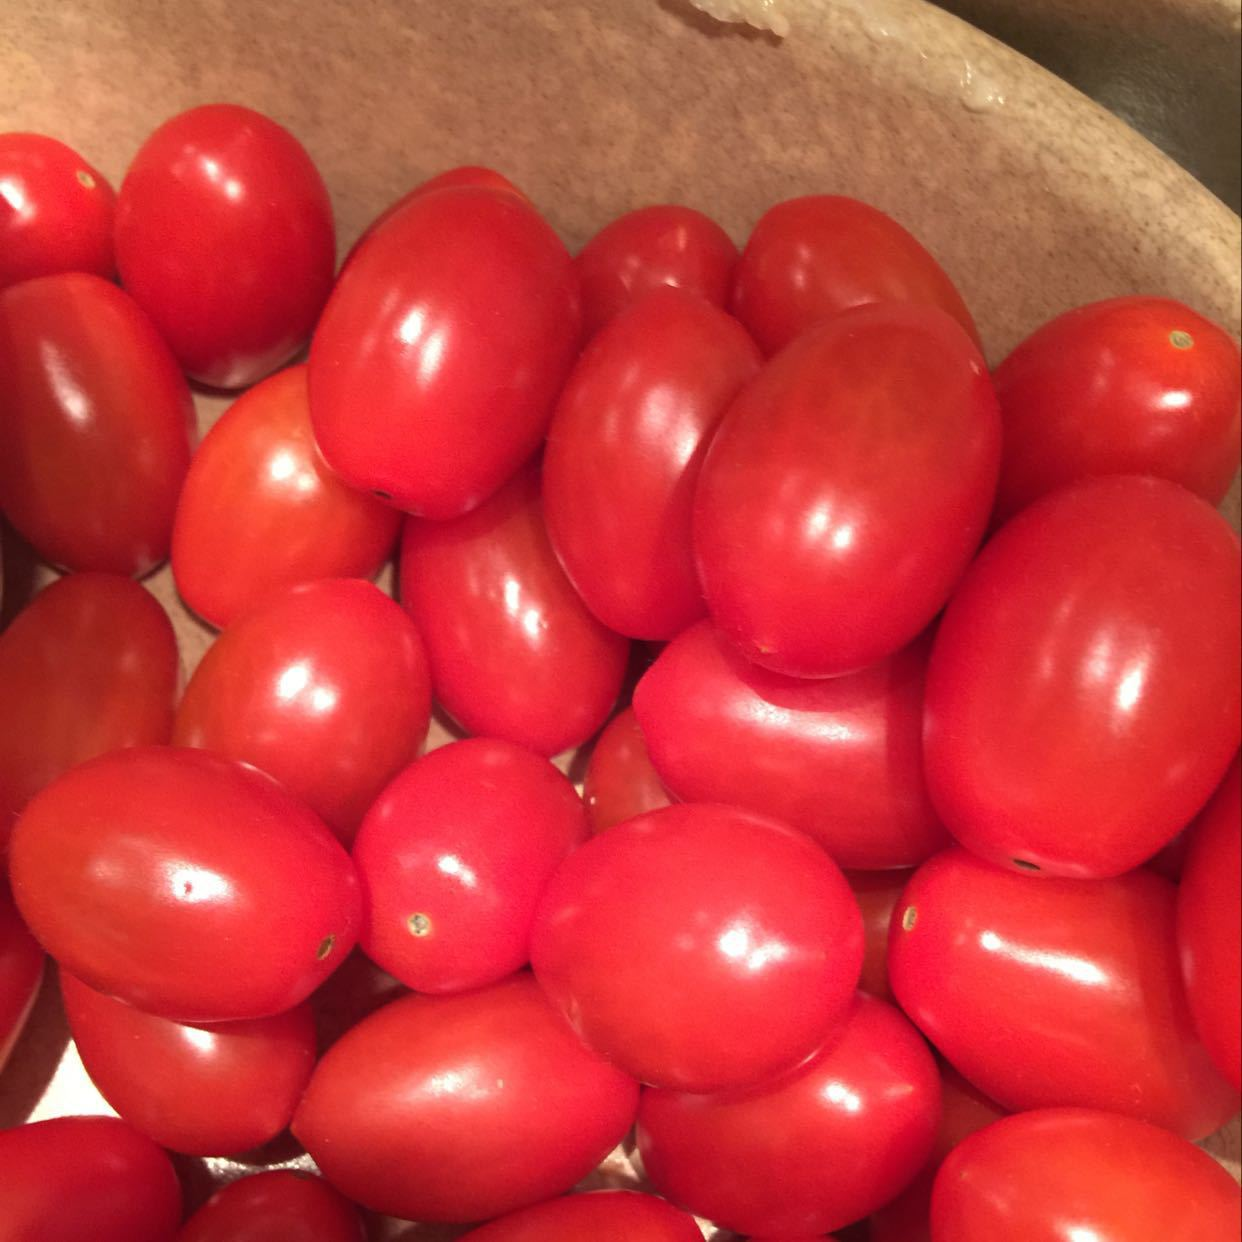 Two packs of cherry tomatoes